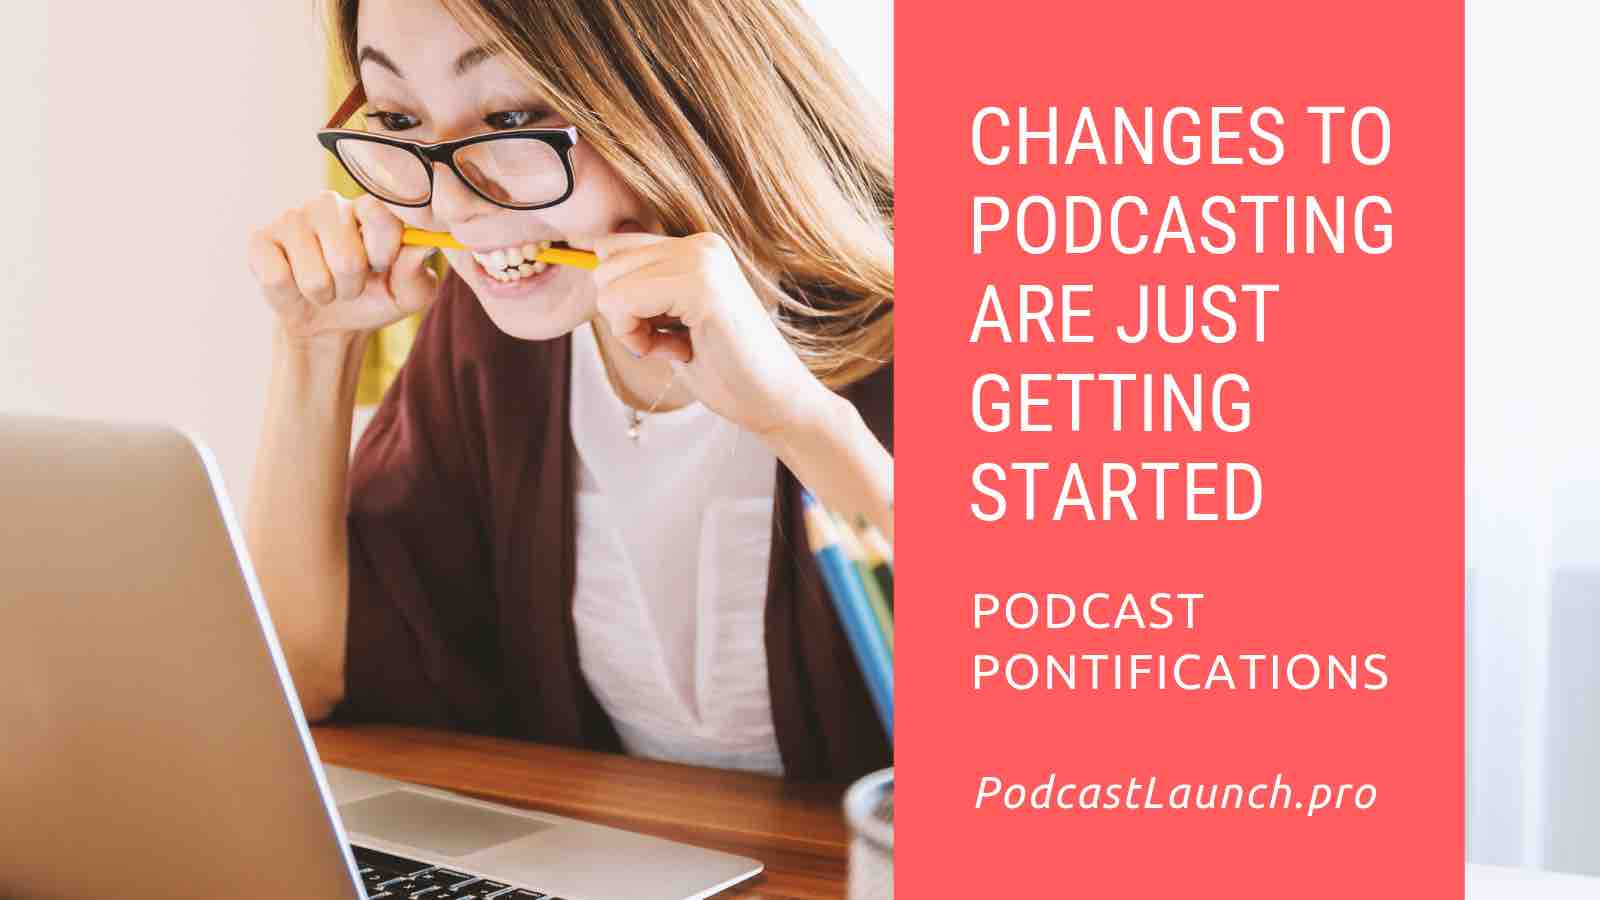 Changes To Podcasting Are Just Getting Started